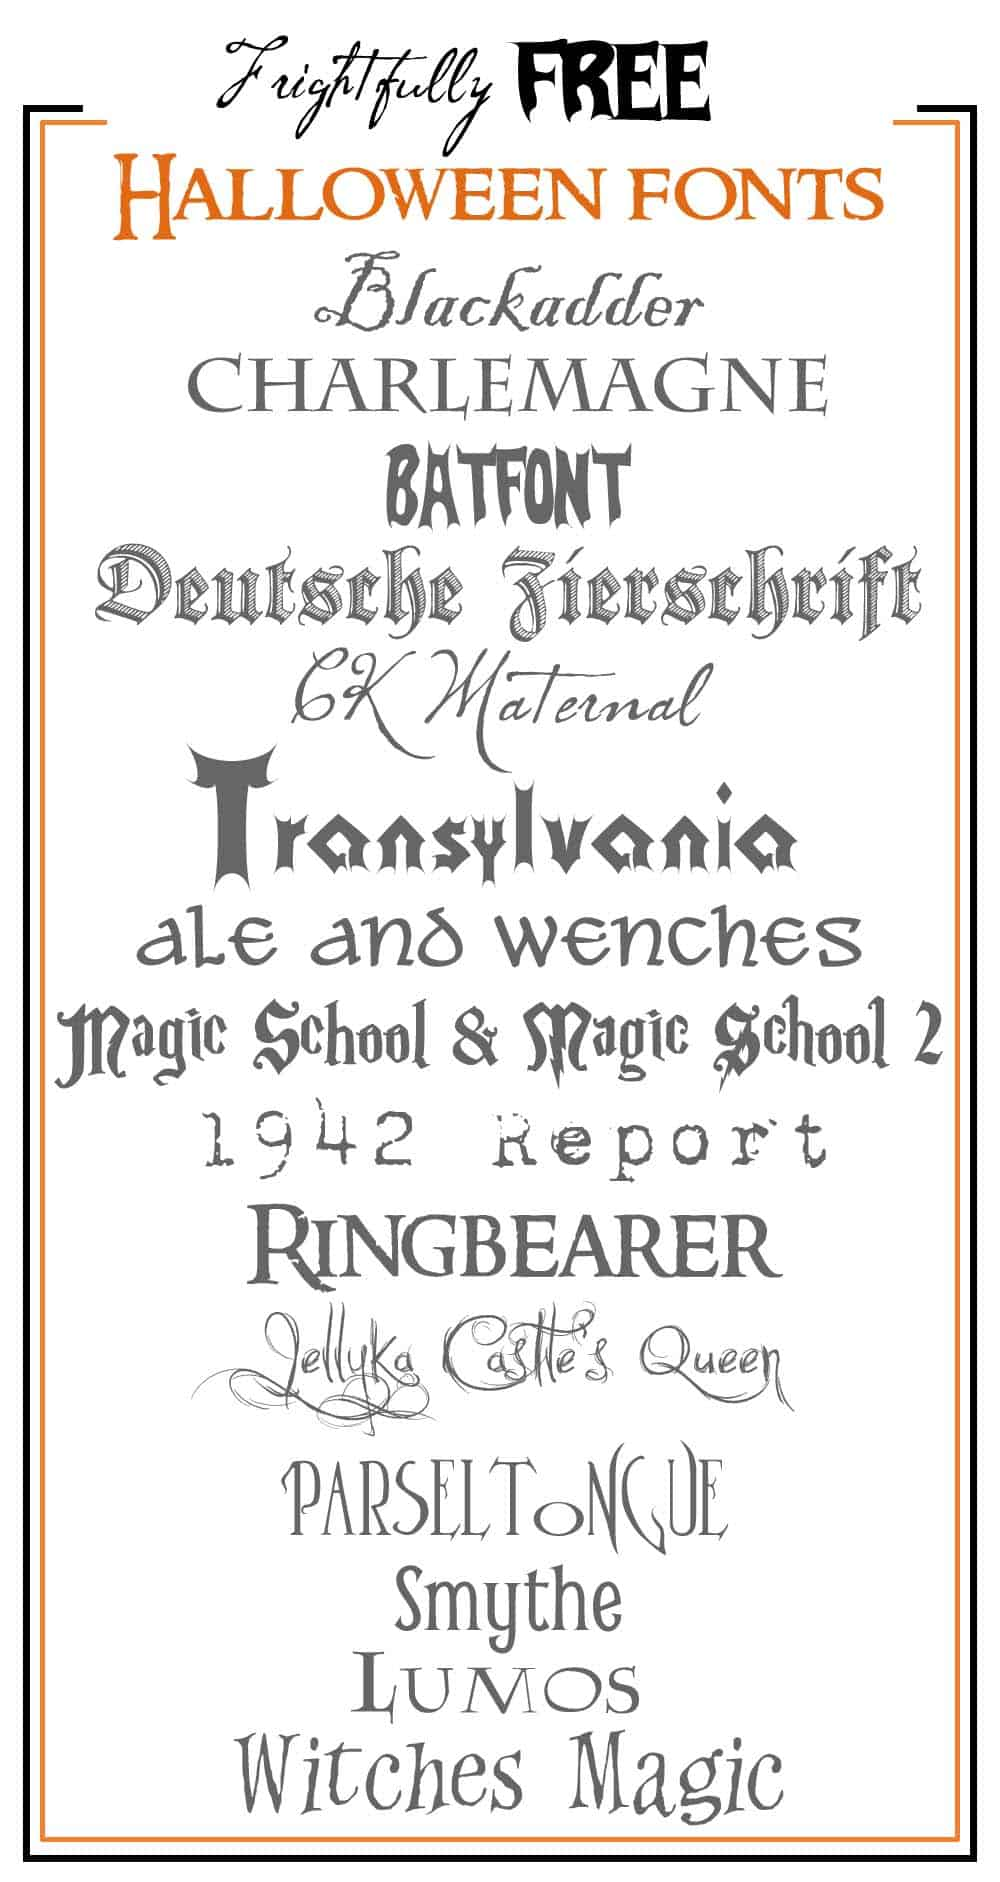 Frightfully Free Halloween Fonts